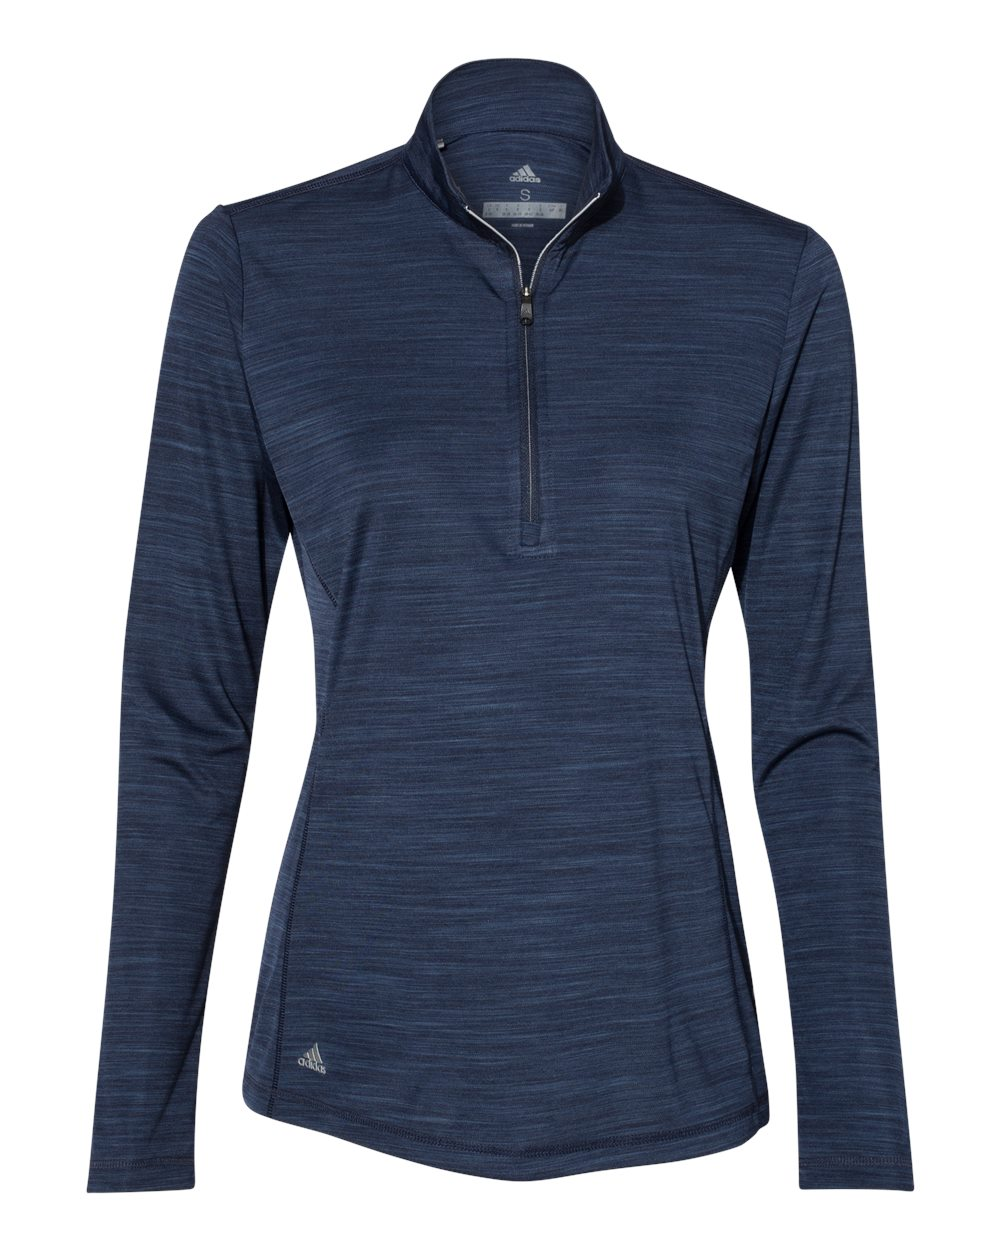 Adidas A476 - Women's Lightweight Melange Quarter-Zip ...